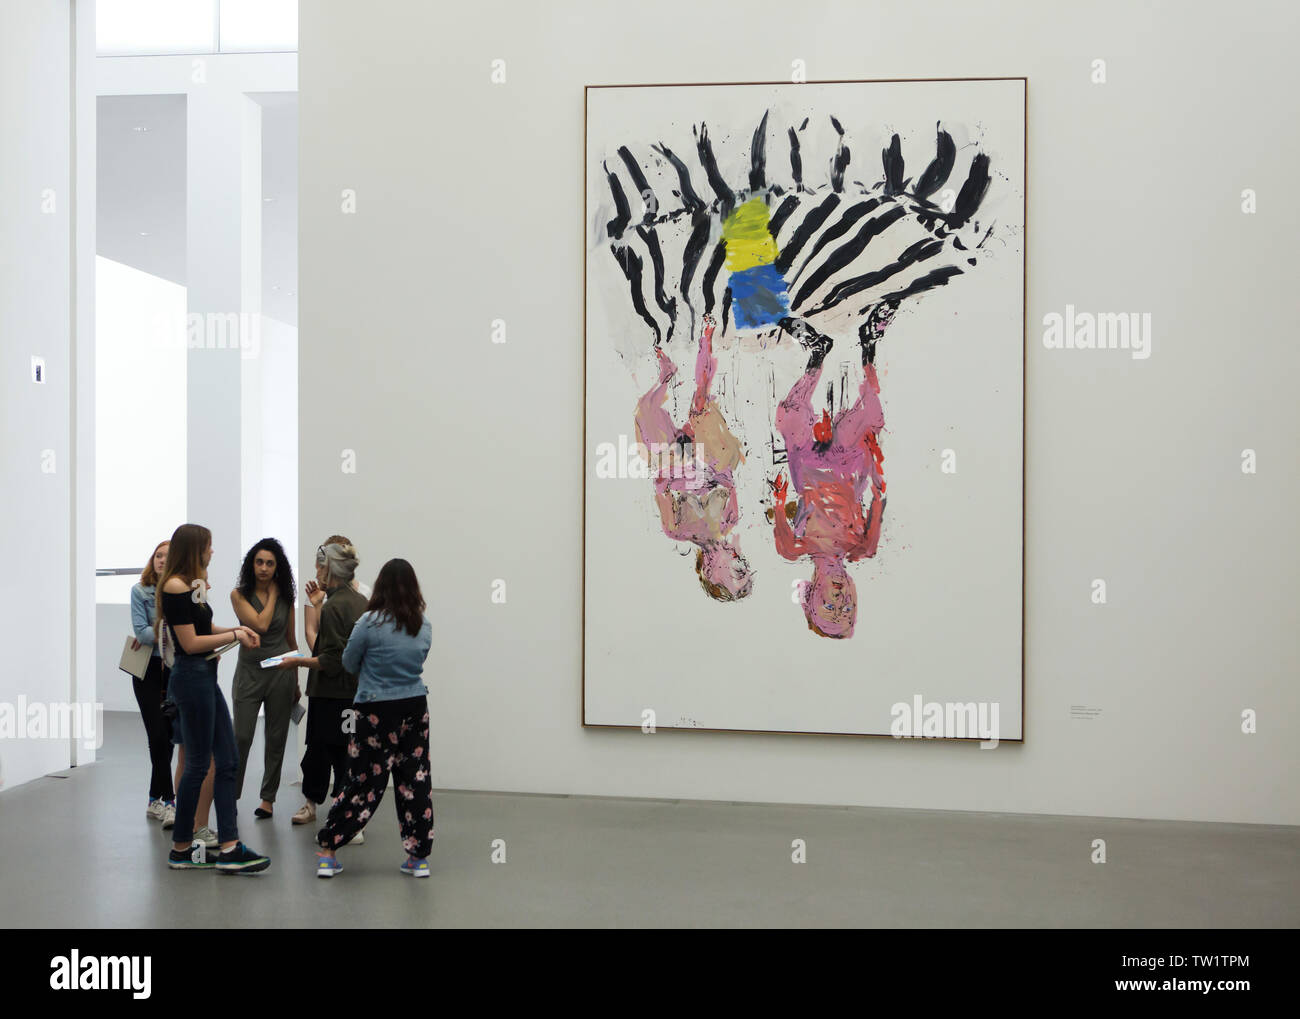 Georg Baselitz High Resolution Stock Photography And Images Alamy